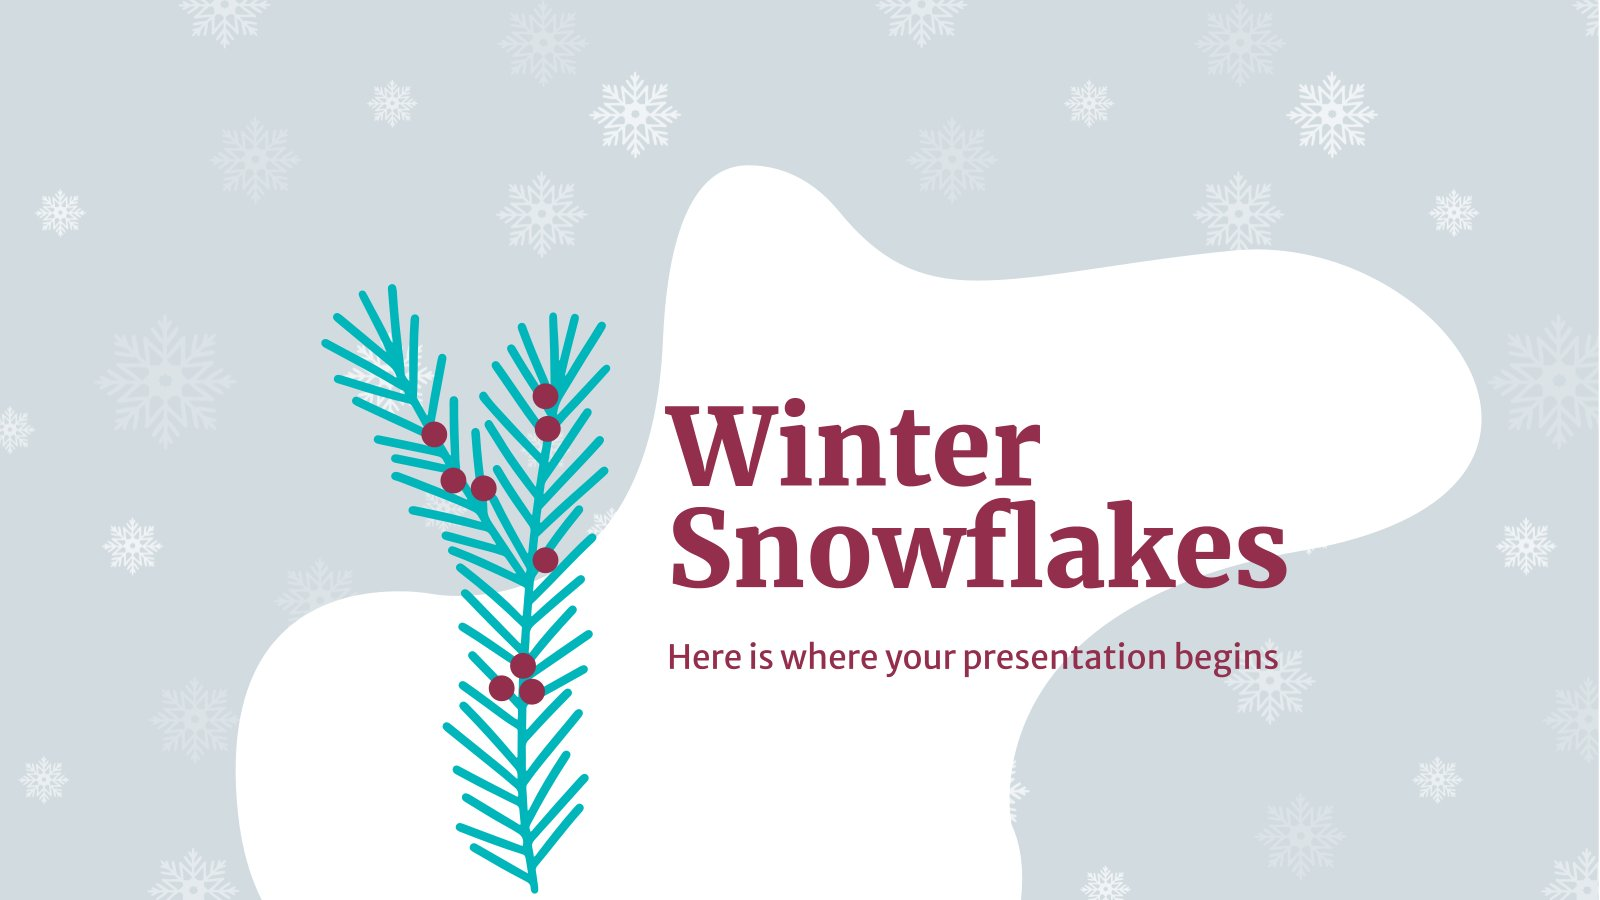 Winter Snowflakes presentation template